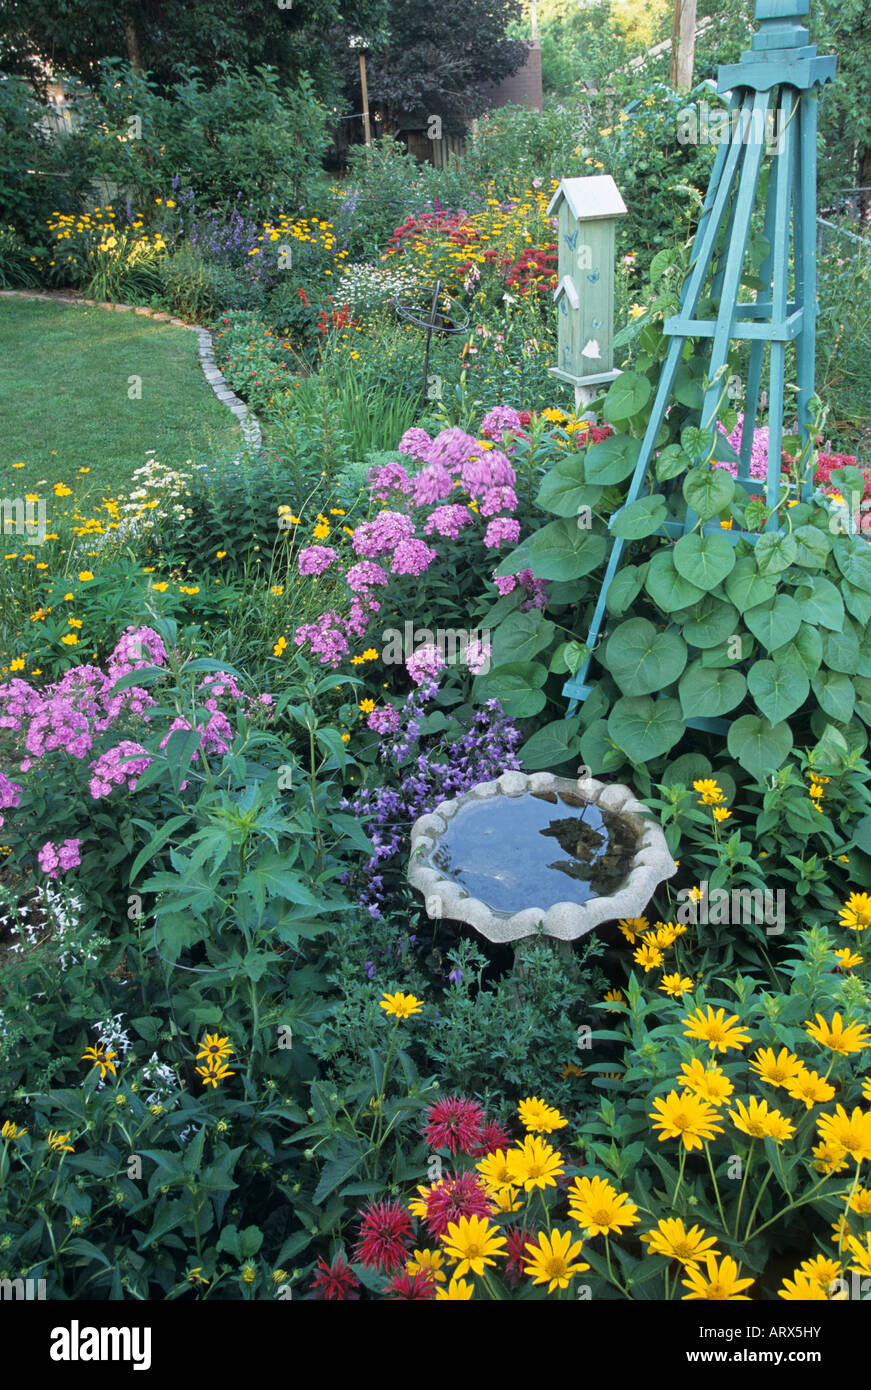 BIRDBATH, TRELLIS AND BUTTERFLY HOUSE IN MINNESOTA GARDEN PLANTED TO  ATTRACT BIRDS AND BUTTERFLIES. JULY.